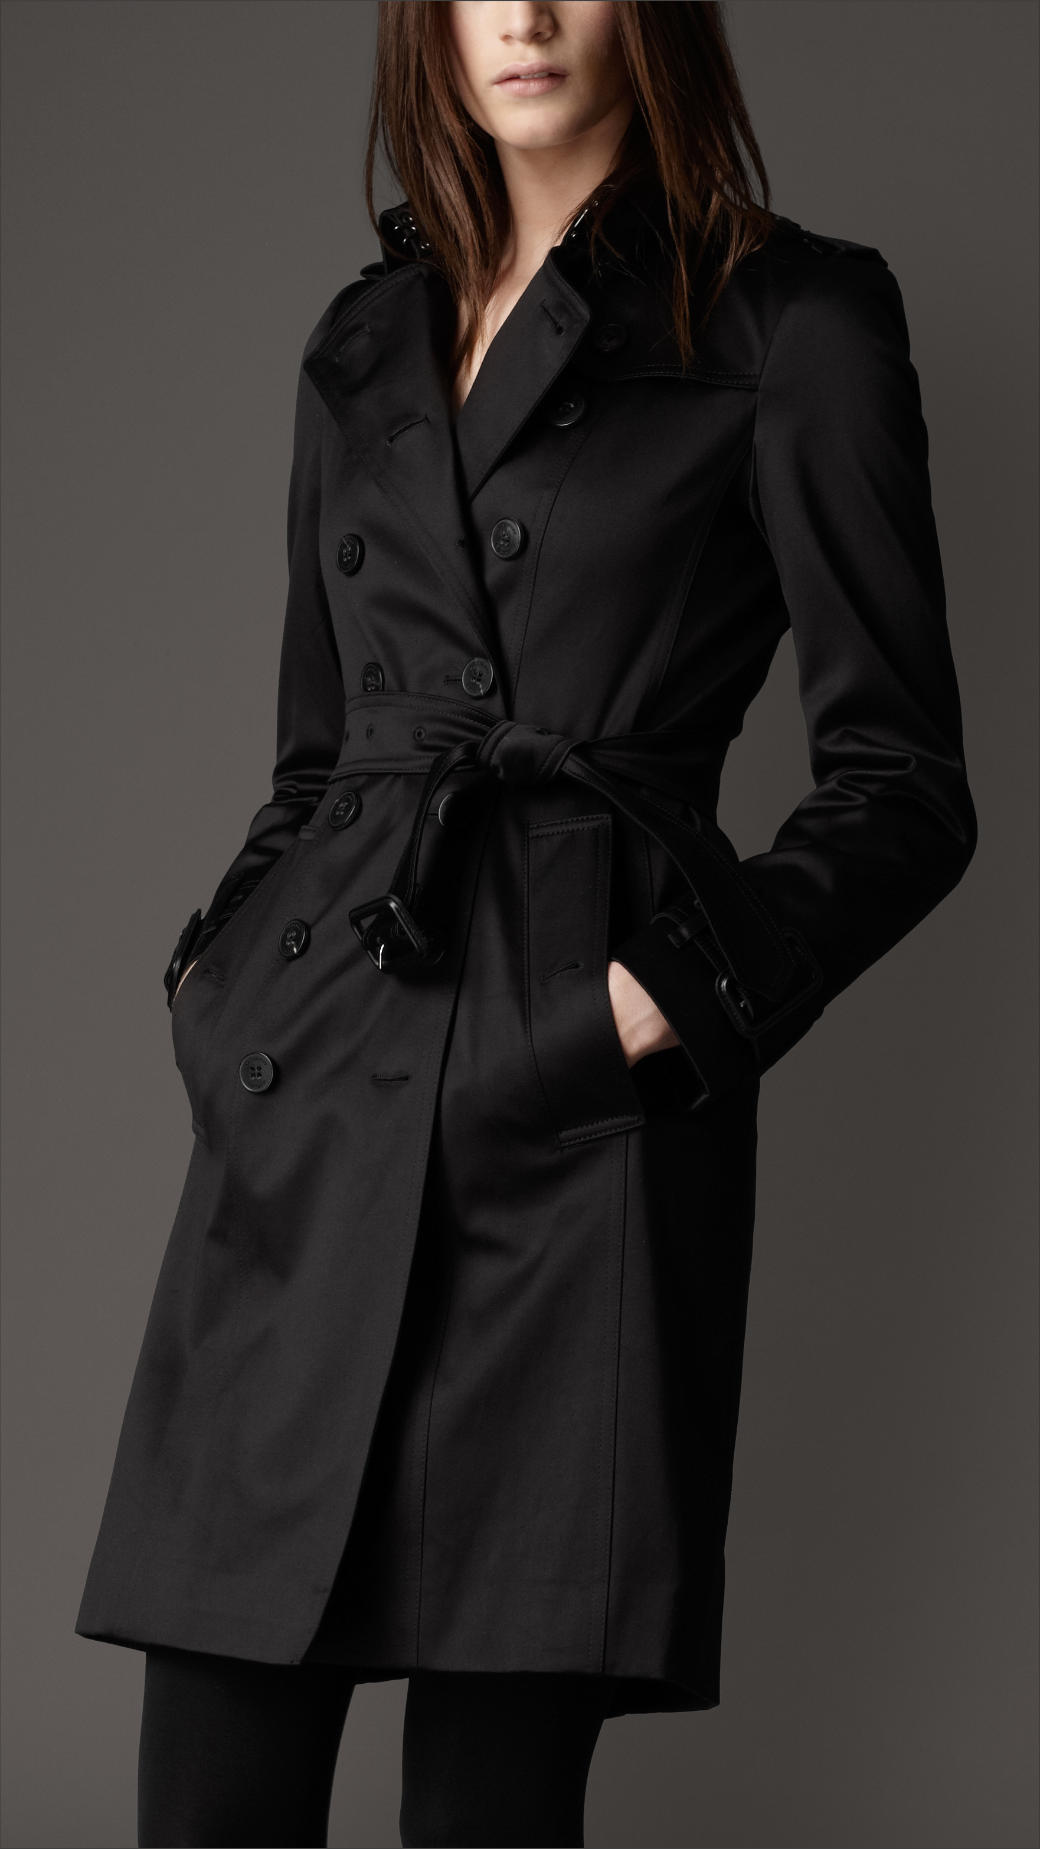 Burberry Cotton Sateen Trench Coat in Black | Lyst